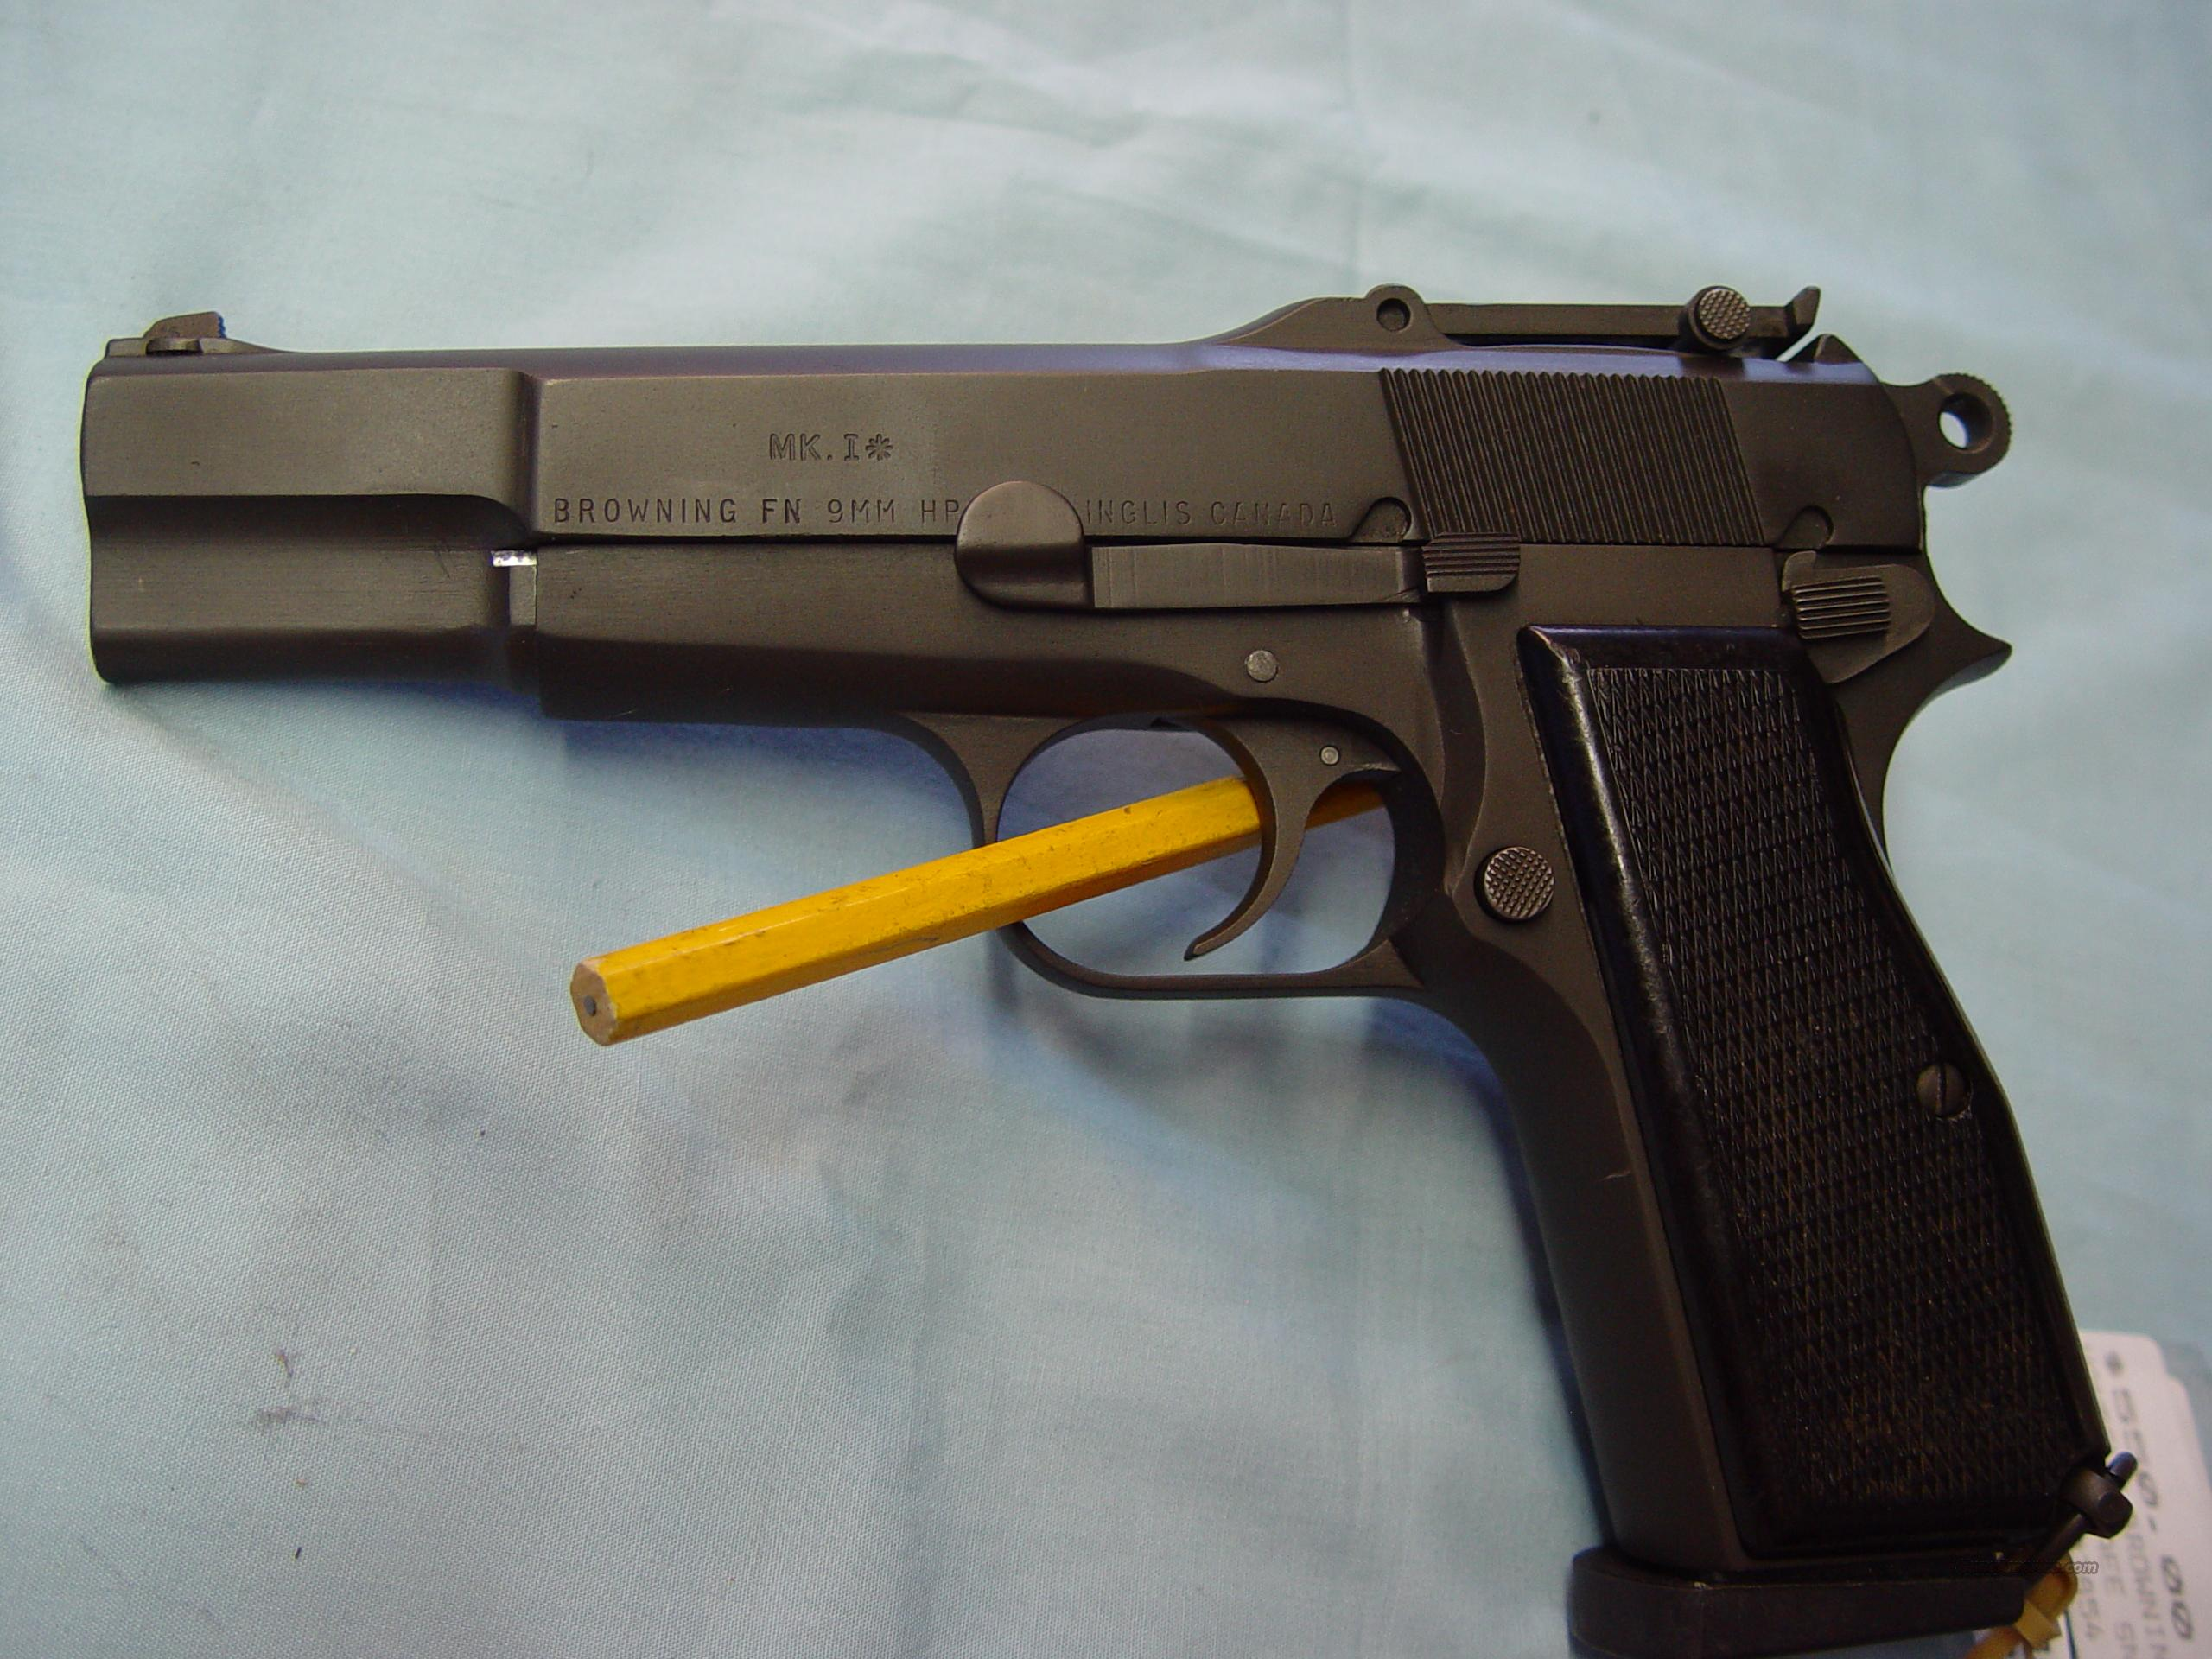 Browning Hi Power (canada inglis) ('43-'45)  Guns > Pistols > Browning Pistols > Hi Power